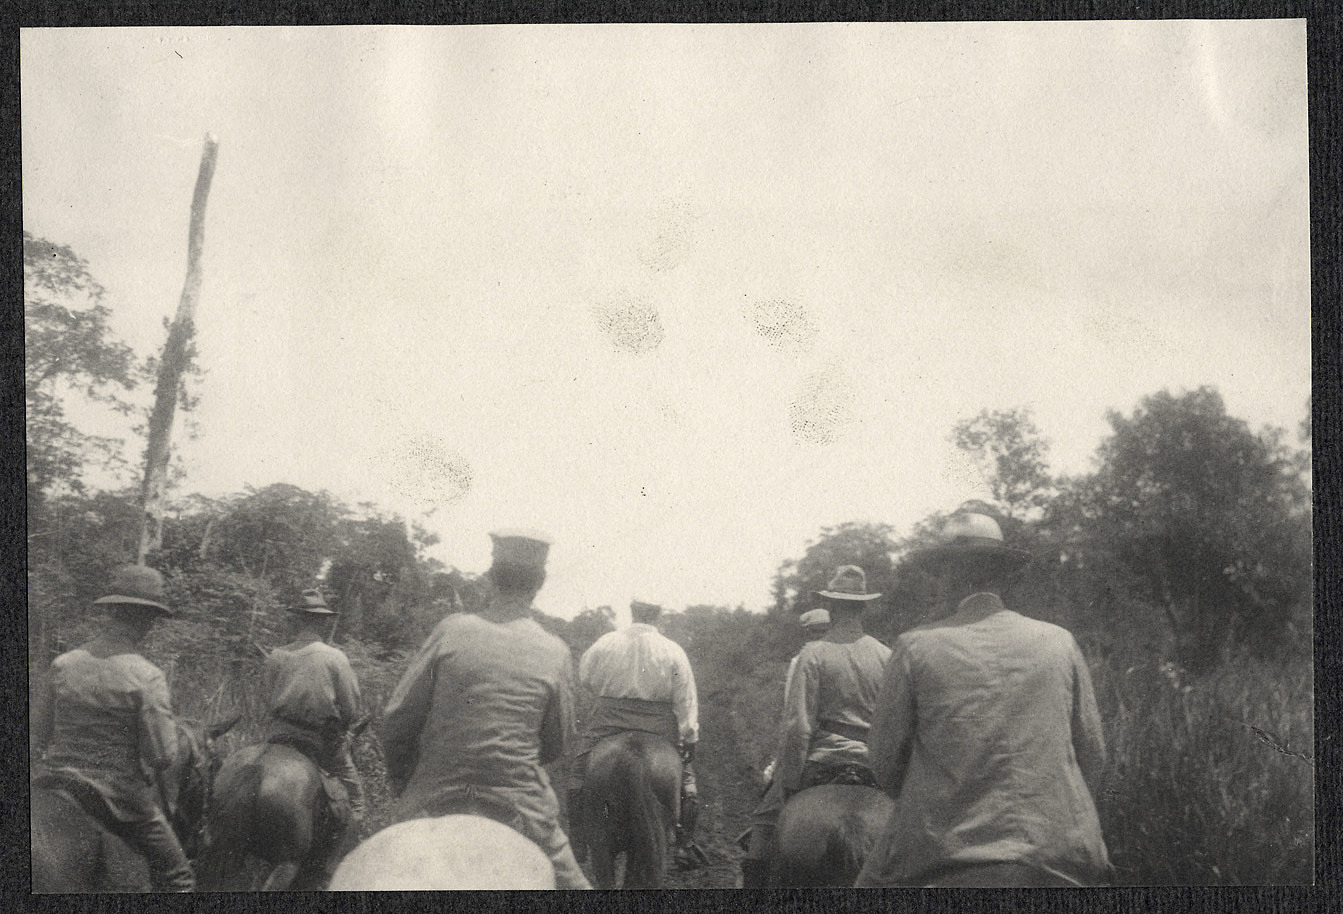 Mindanao: Army riders on the forest trail, William H. Taft near the lead